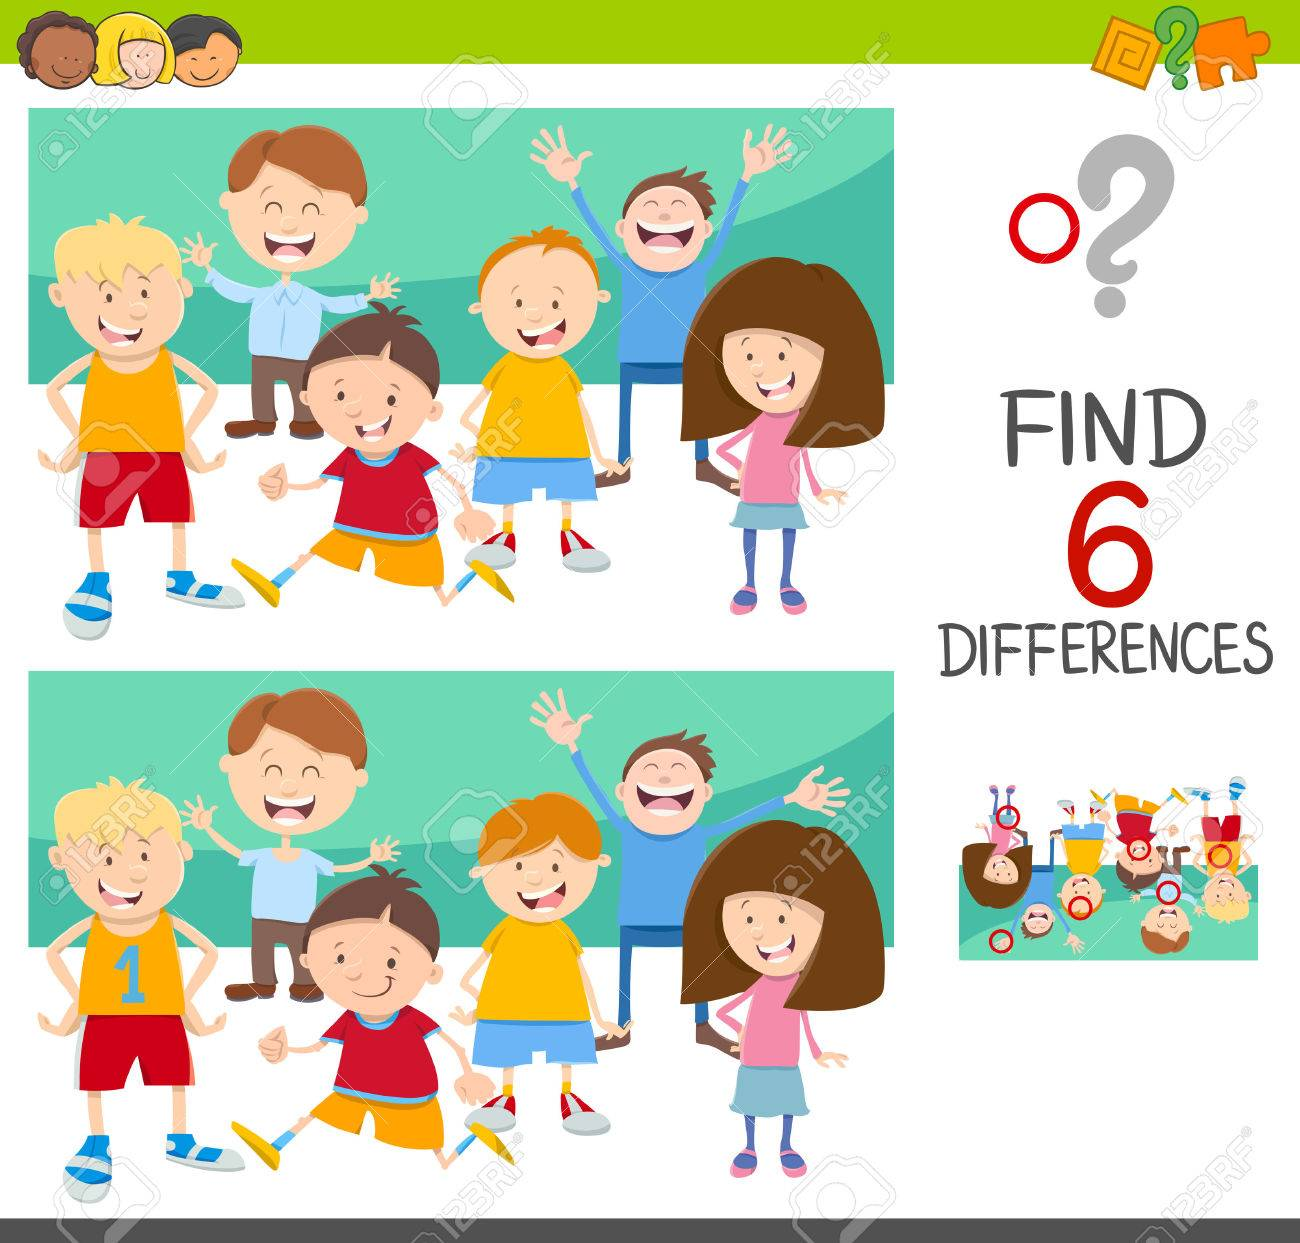 Cartoon Illustration Of Spot The Differences Educational Game Royalty Free Cliparts Vectors And Stock Illustration Image 77883576